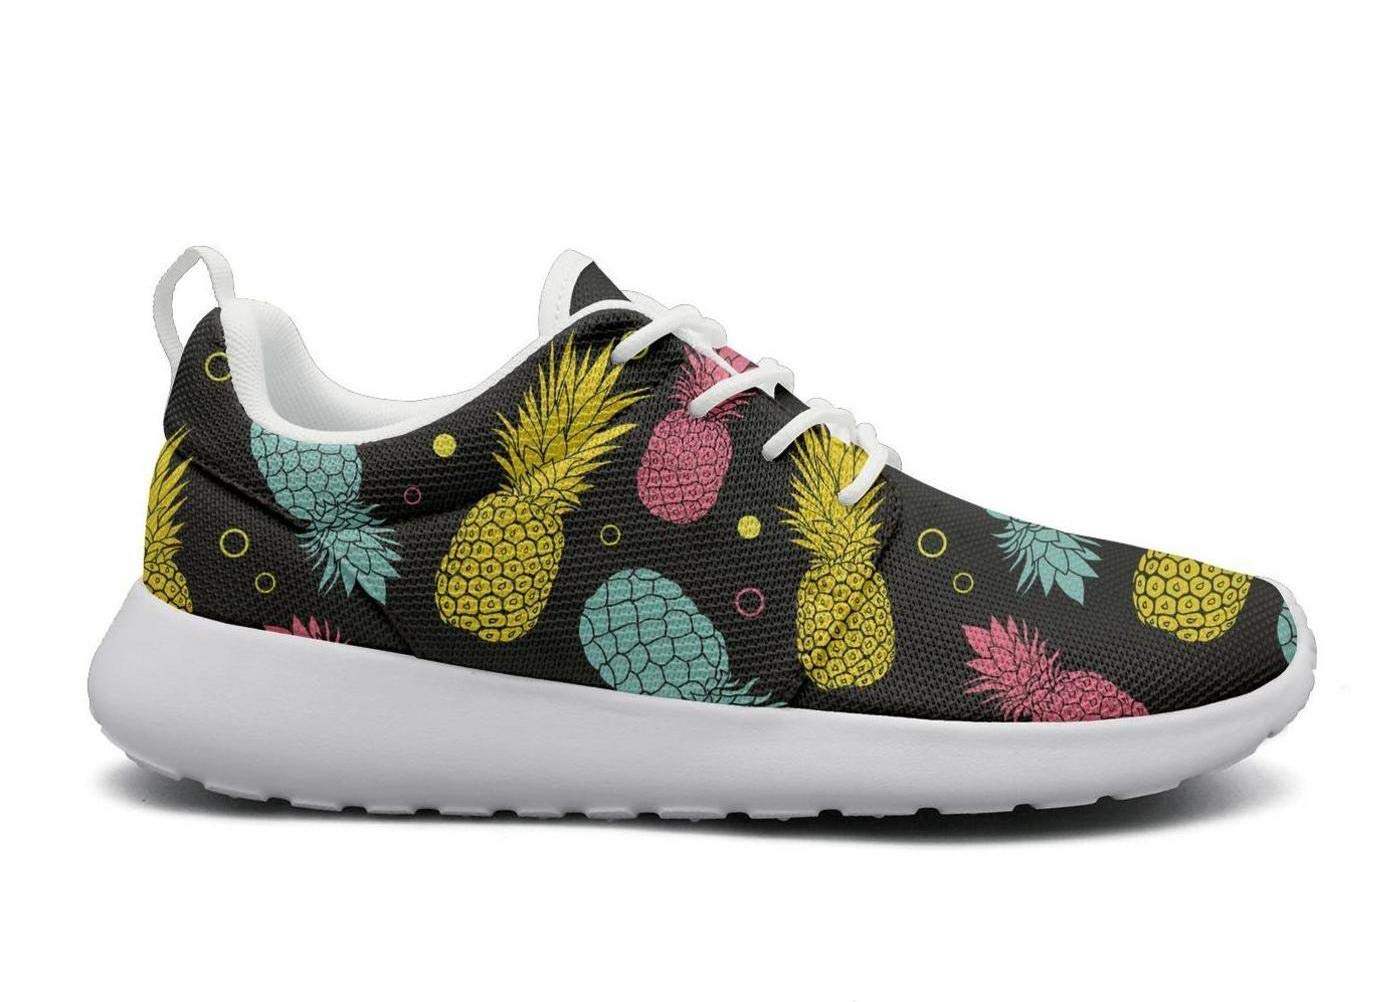 ERSER Black Summer Colorful Tropical Fruit Pineapple Free Running Shoes Women